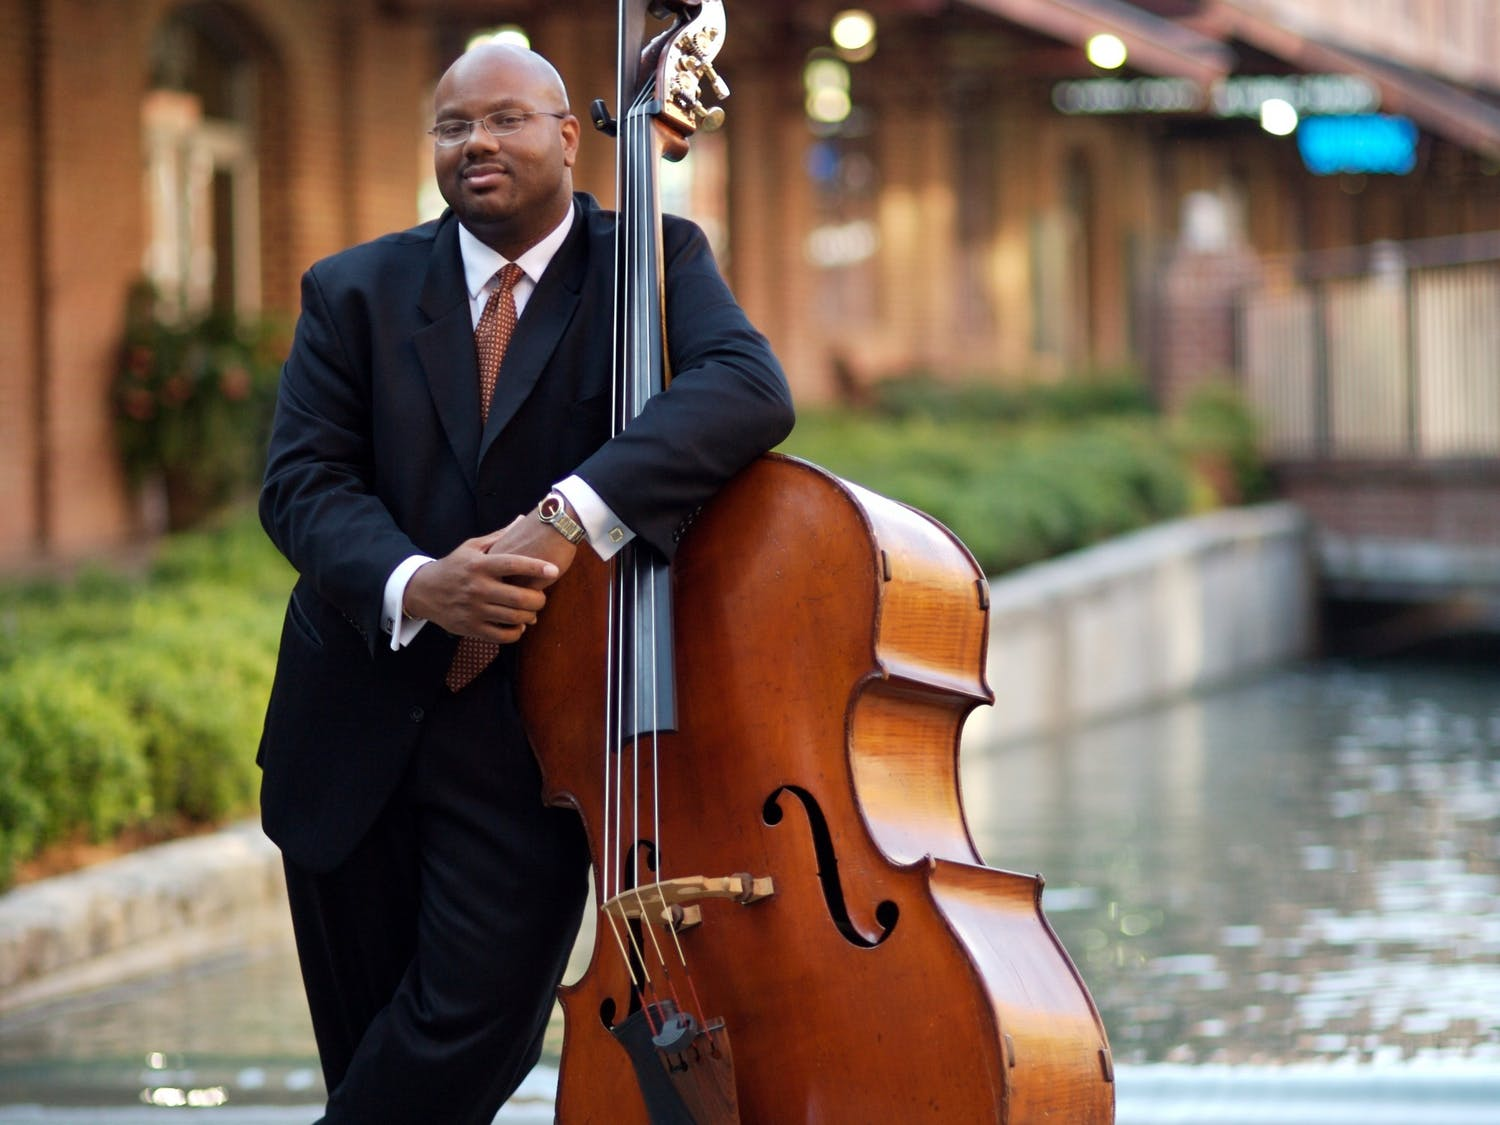 Jazz program director John Brown began his appointment as Duke's vice provost for the arts July 1.